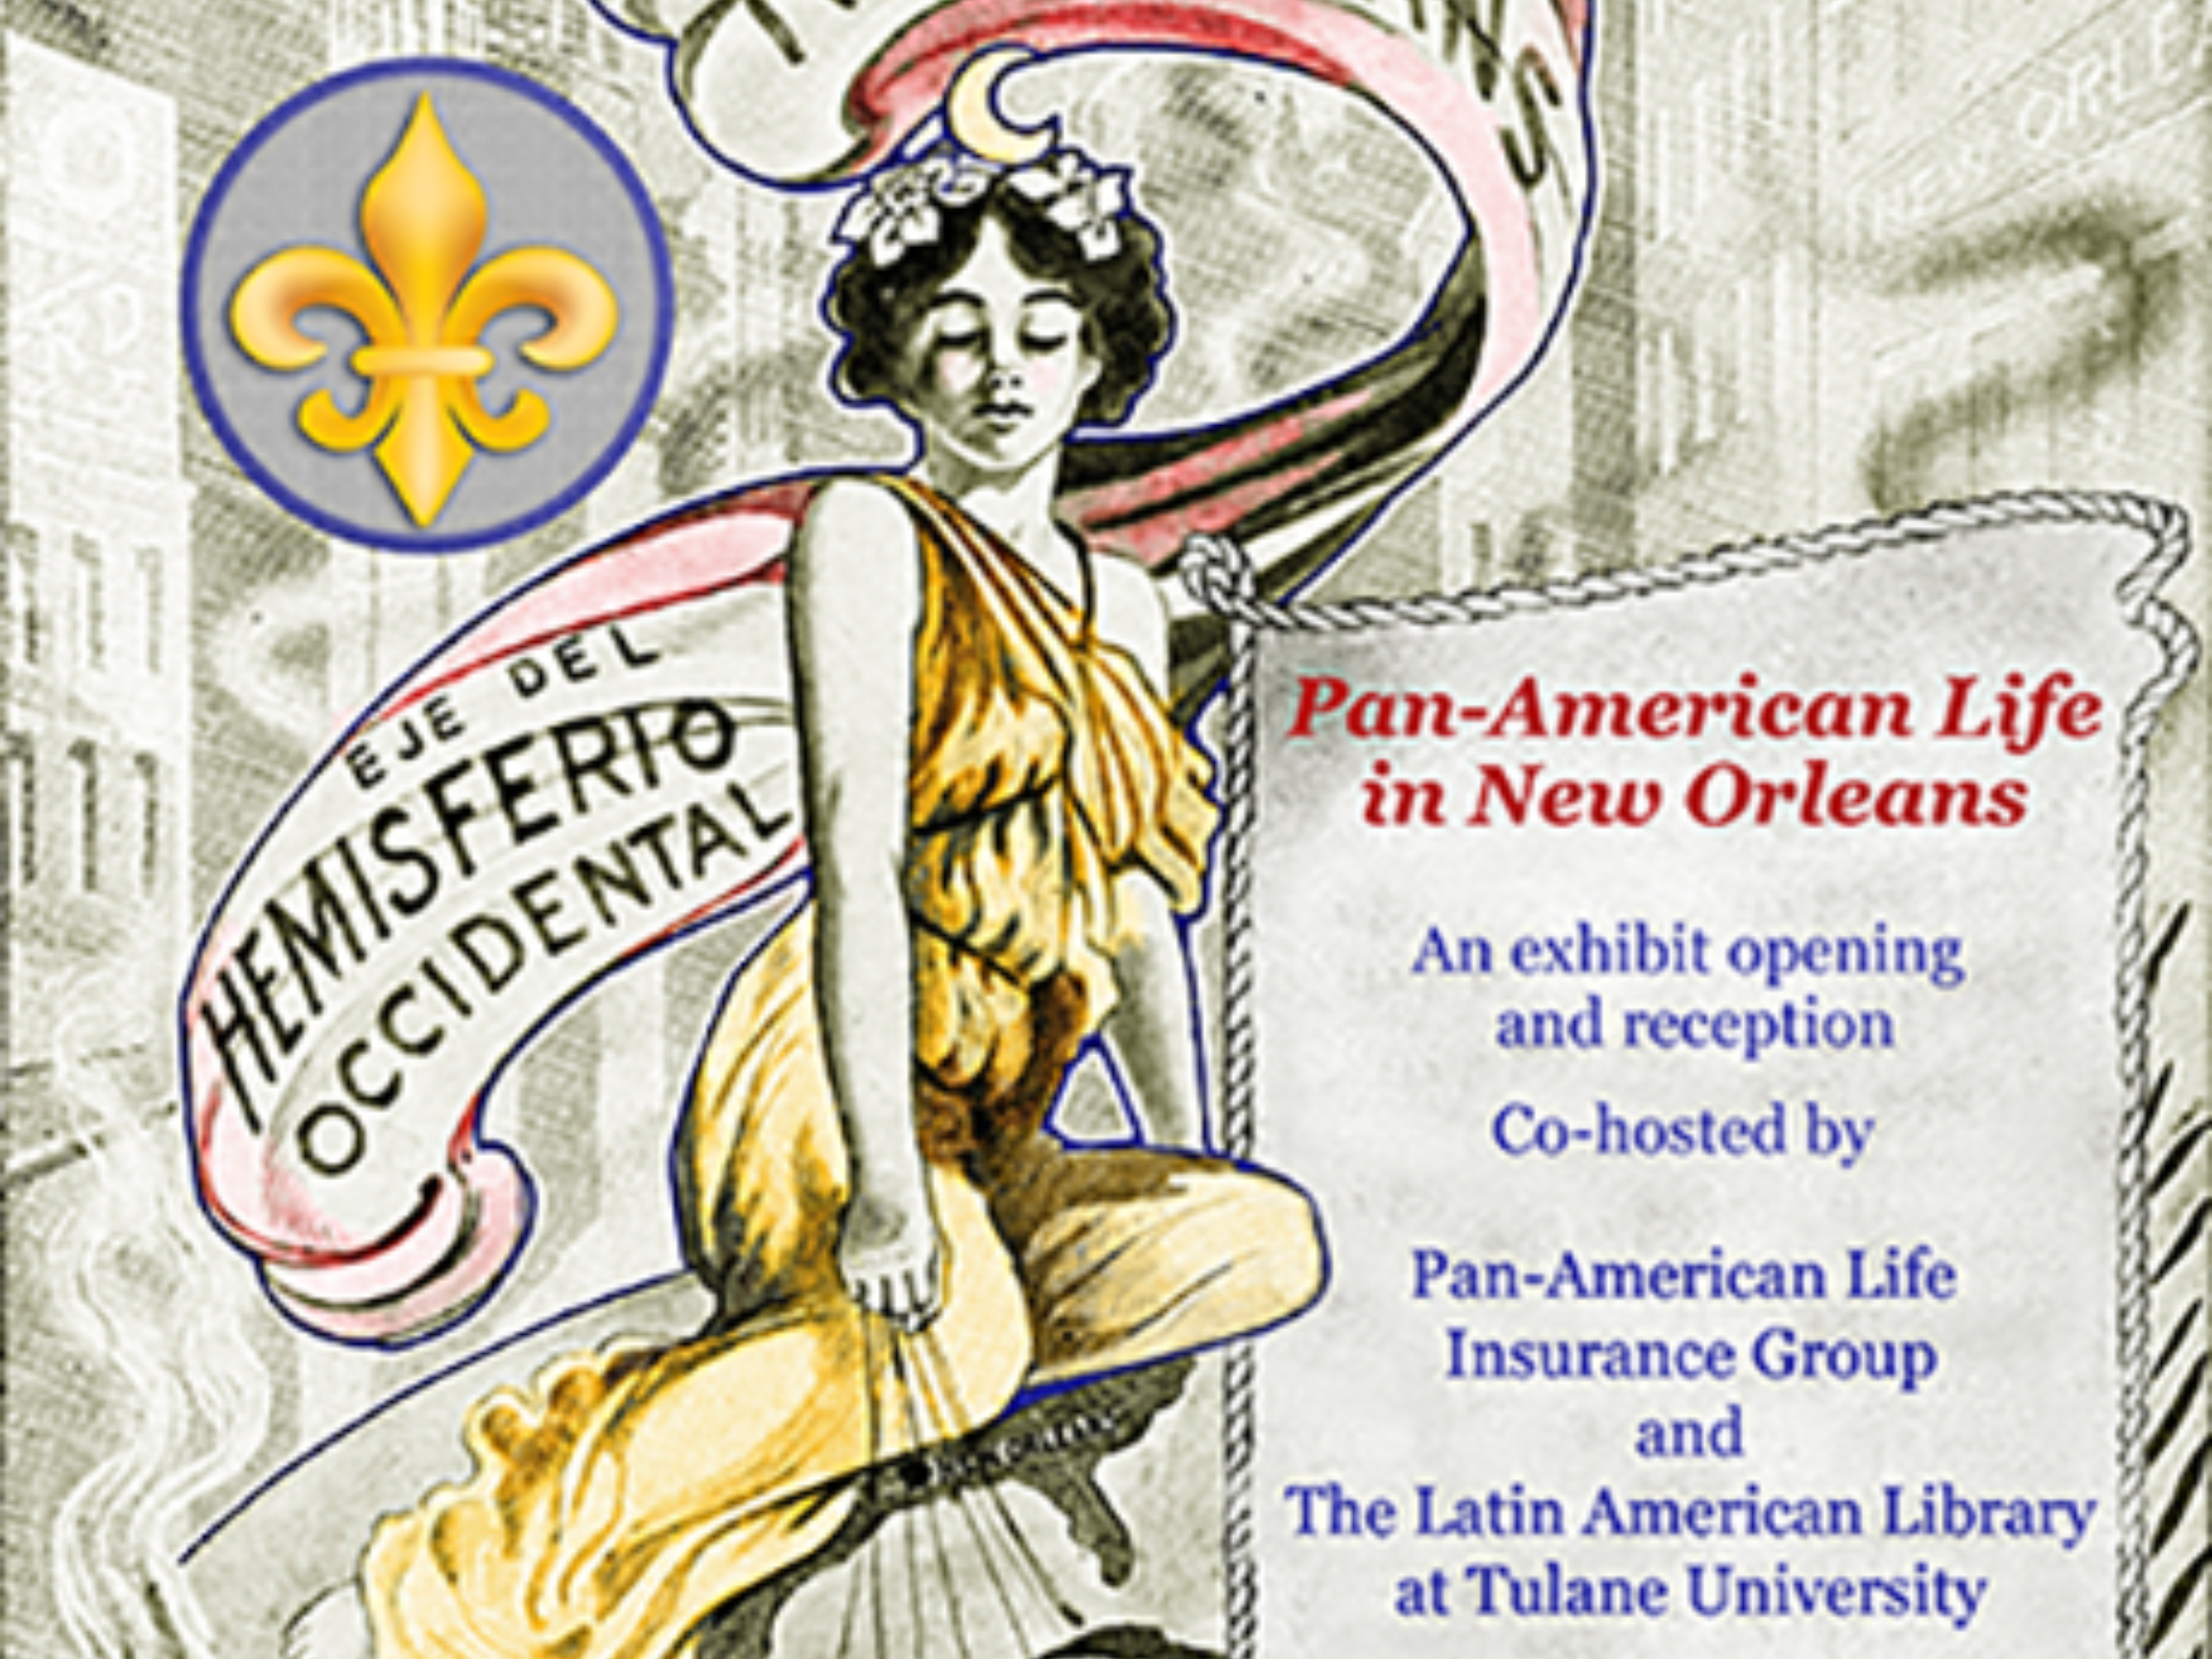 Poster advertising the exhibit opening of Pan-American Life in New Orleans